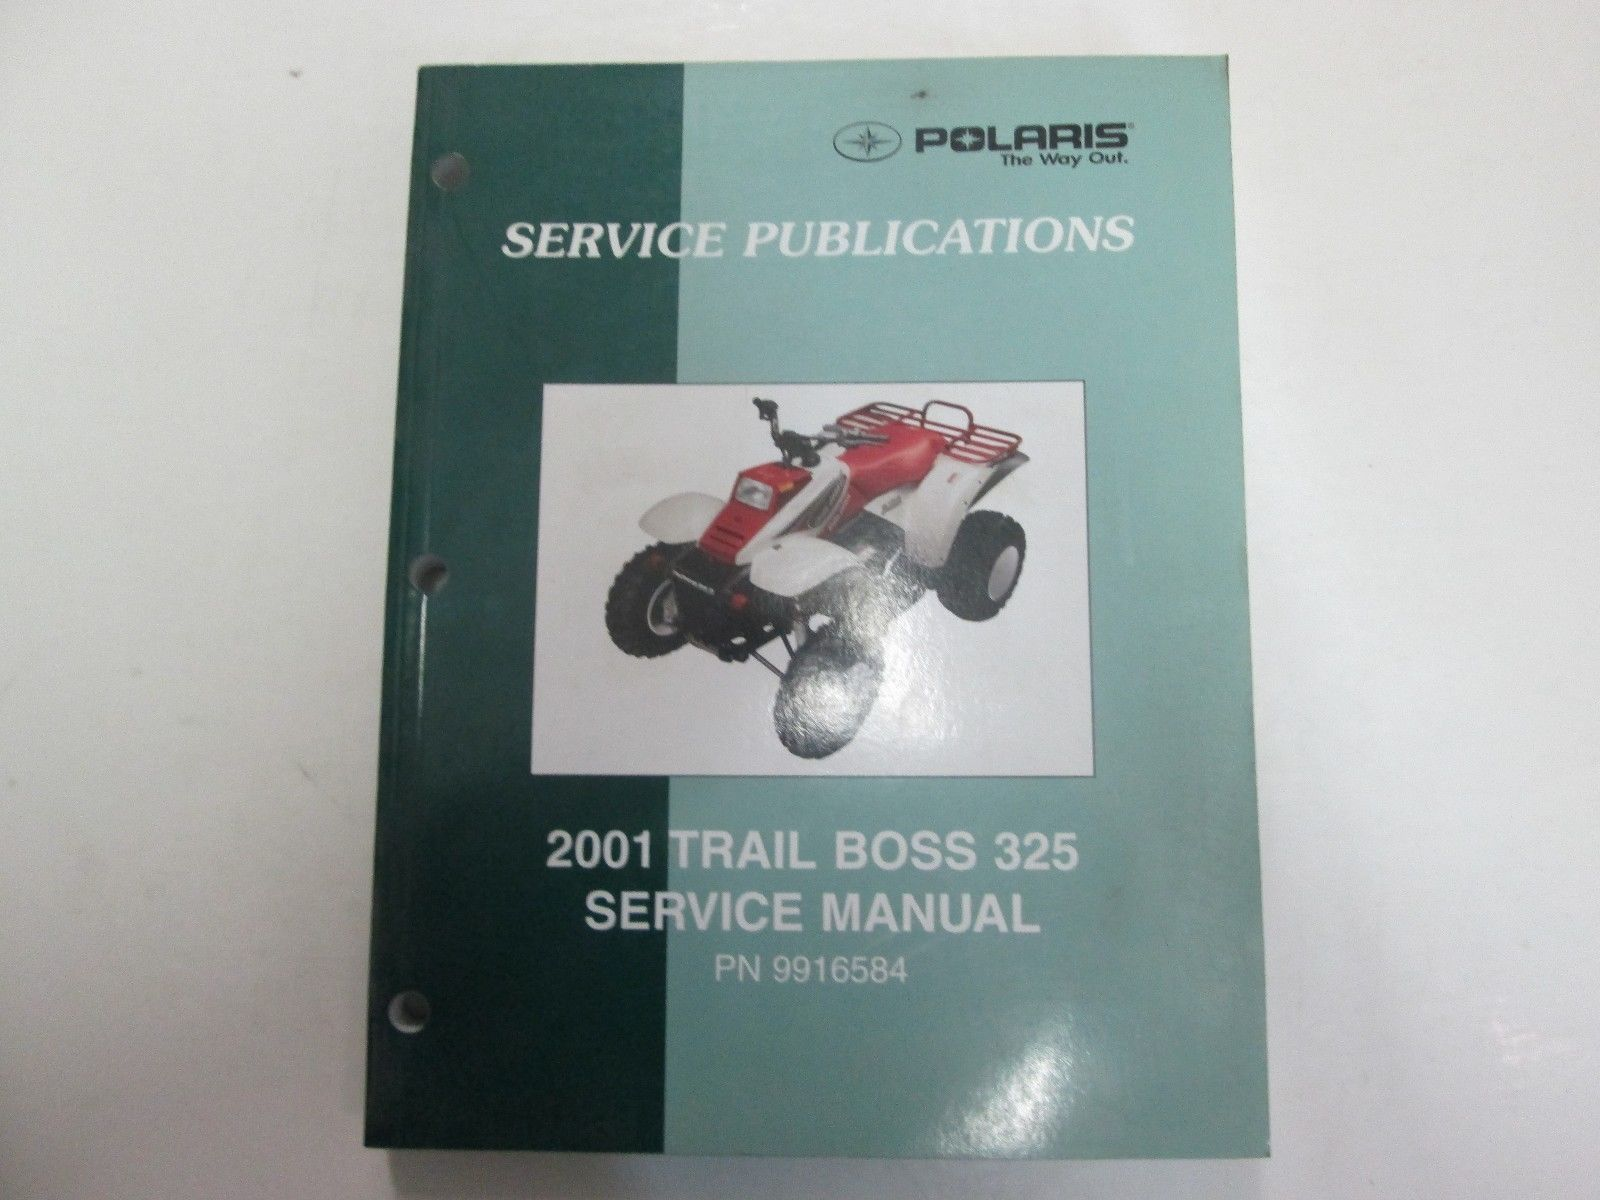 2001 polaris trail boss 325 service manual and 50 similar items rh bonanza com 2001 BMW 325 2001 BMW 325Ci Convertible